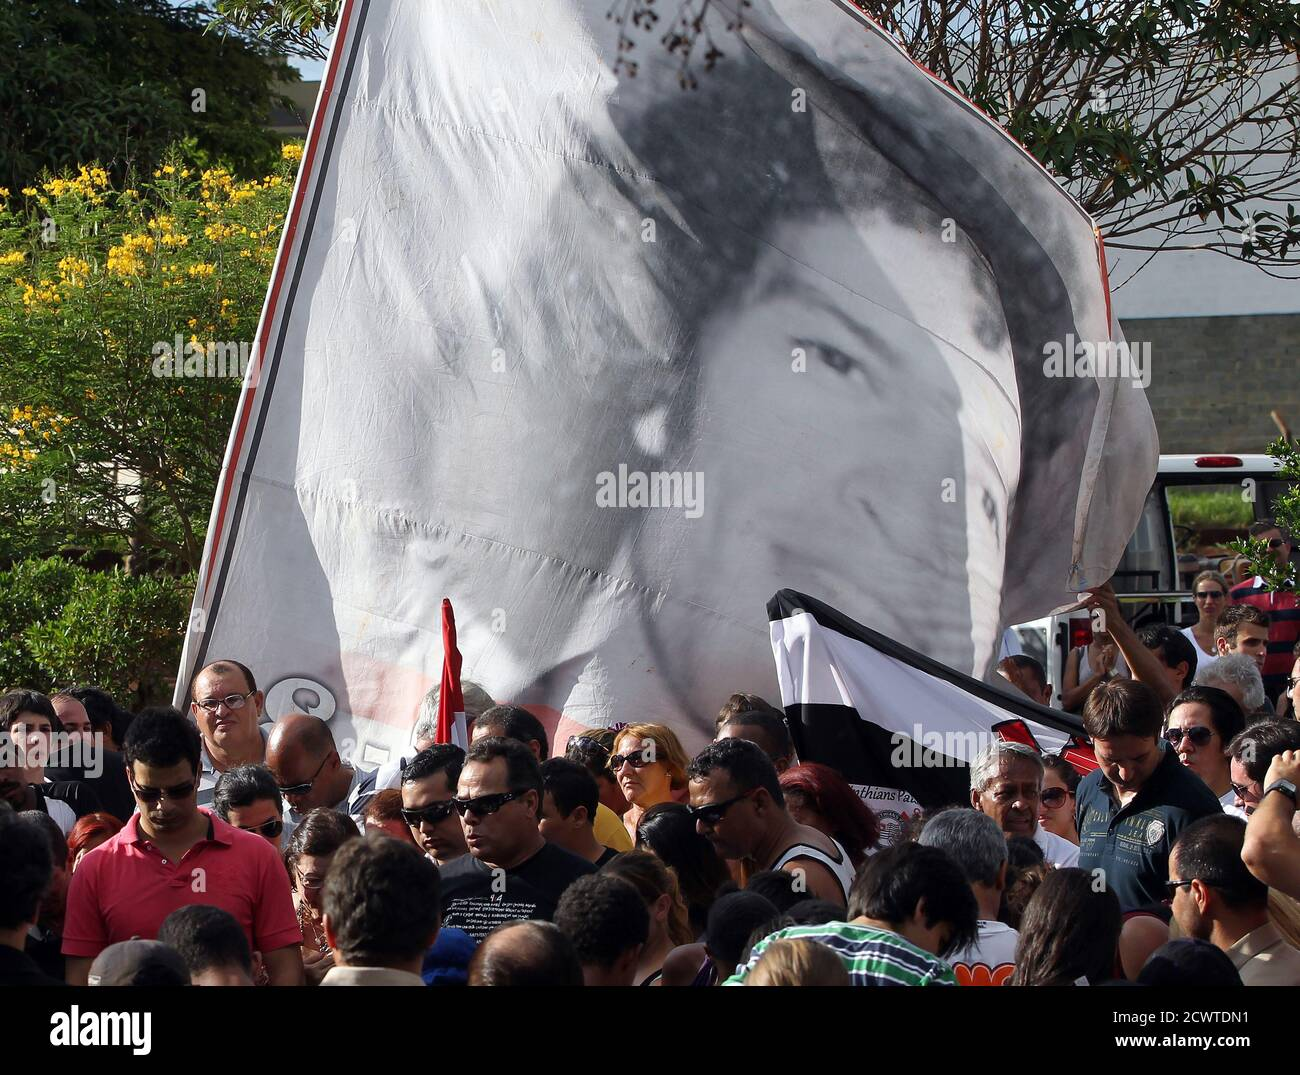 People attend the funeral of Brazil's 1982 World Cup captain Socrates in Ribeirao Preto December 4, 2011. Socrates, the 'Golden Heel' renowned as one of the great playmakers of his generation, died in hospital on Sunday of septic shock at the age of 57, his doctors said in a statement. REUTERS/Paulo Whitaker (BRAZIL - Tags: SPORT SOCCER OBITUARY) Stock Photo